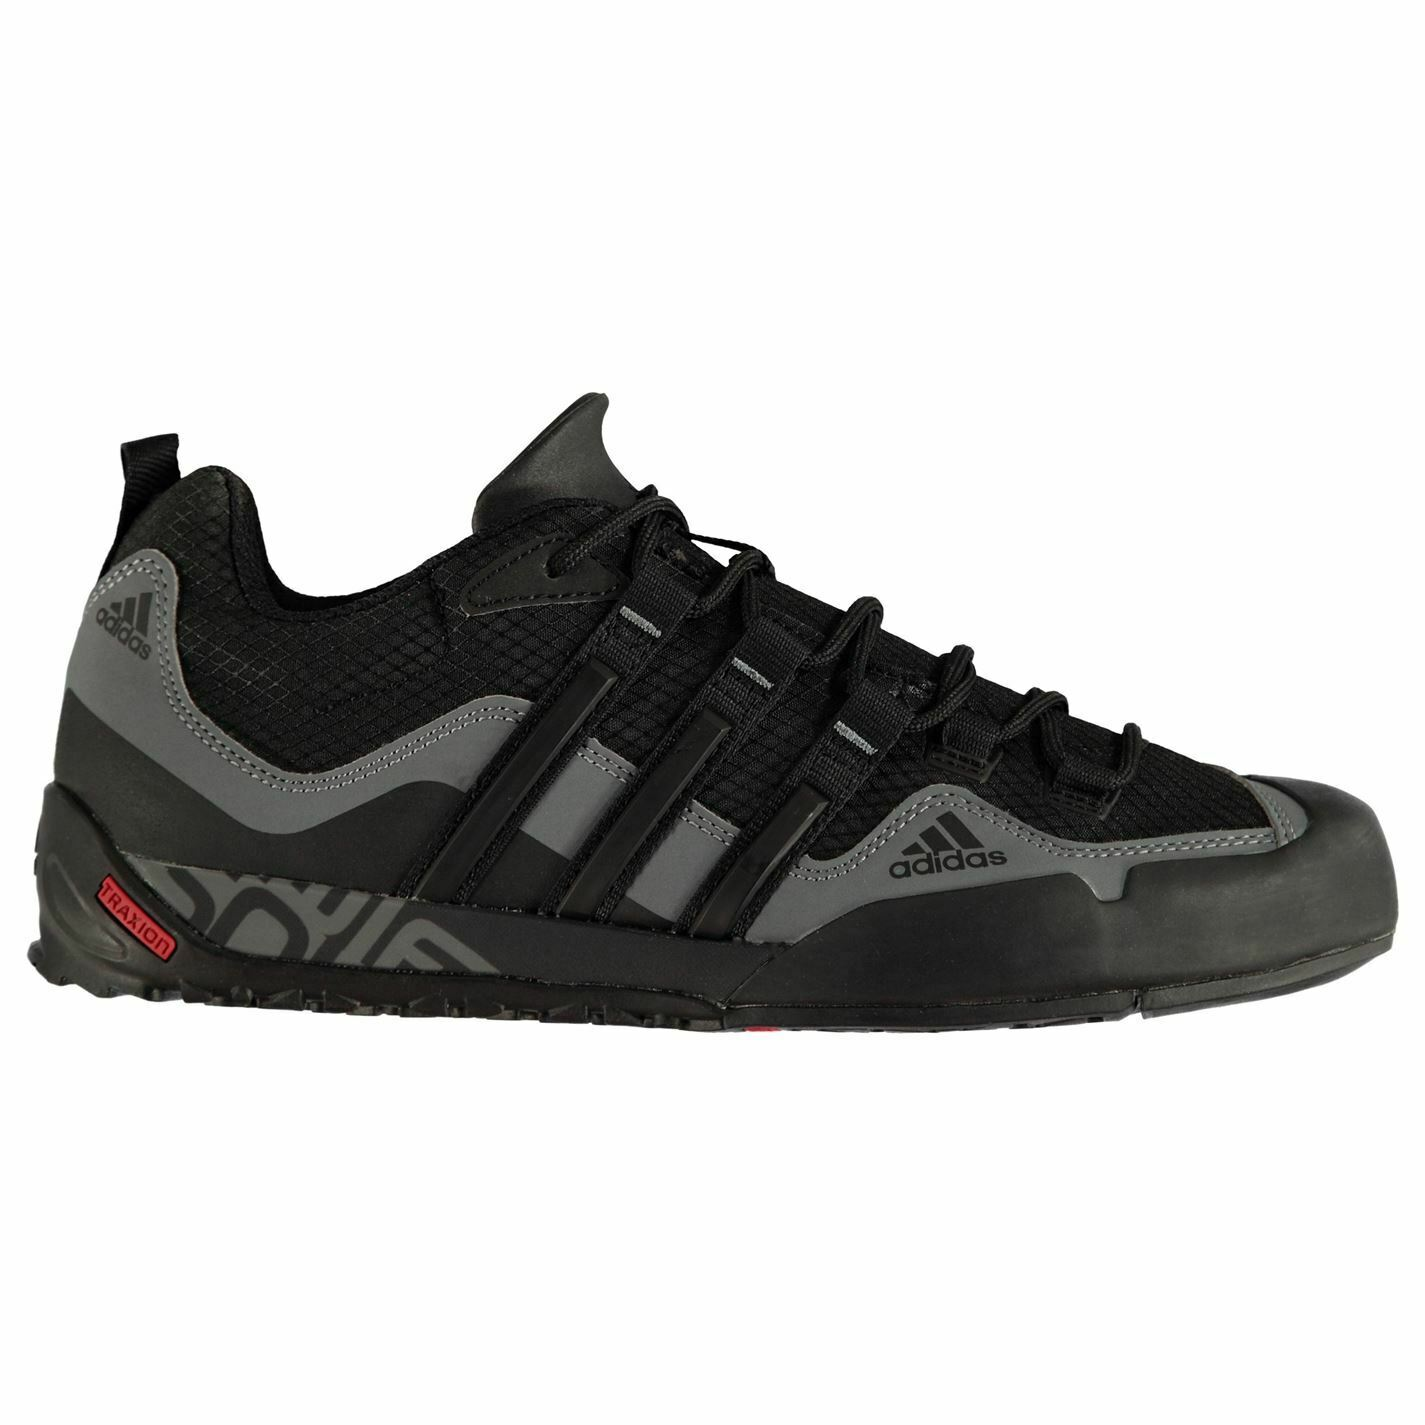 Adidas Mens Terrex Swift Solo Outdoor shoes Waterproof Walking Lace Up Padded